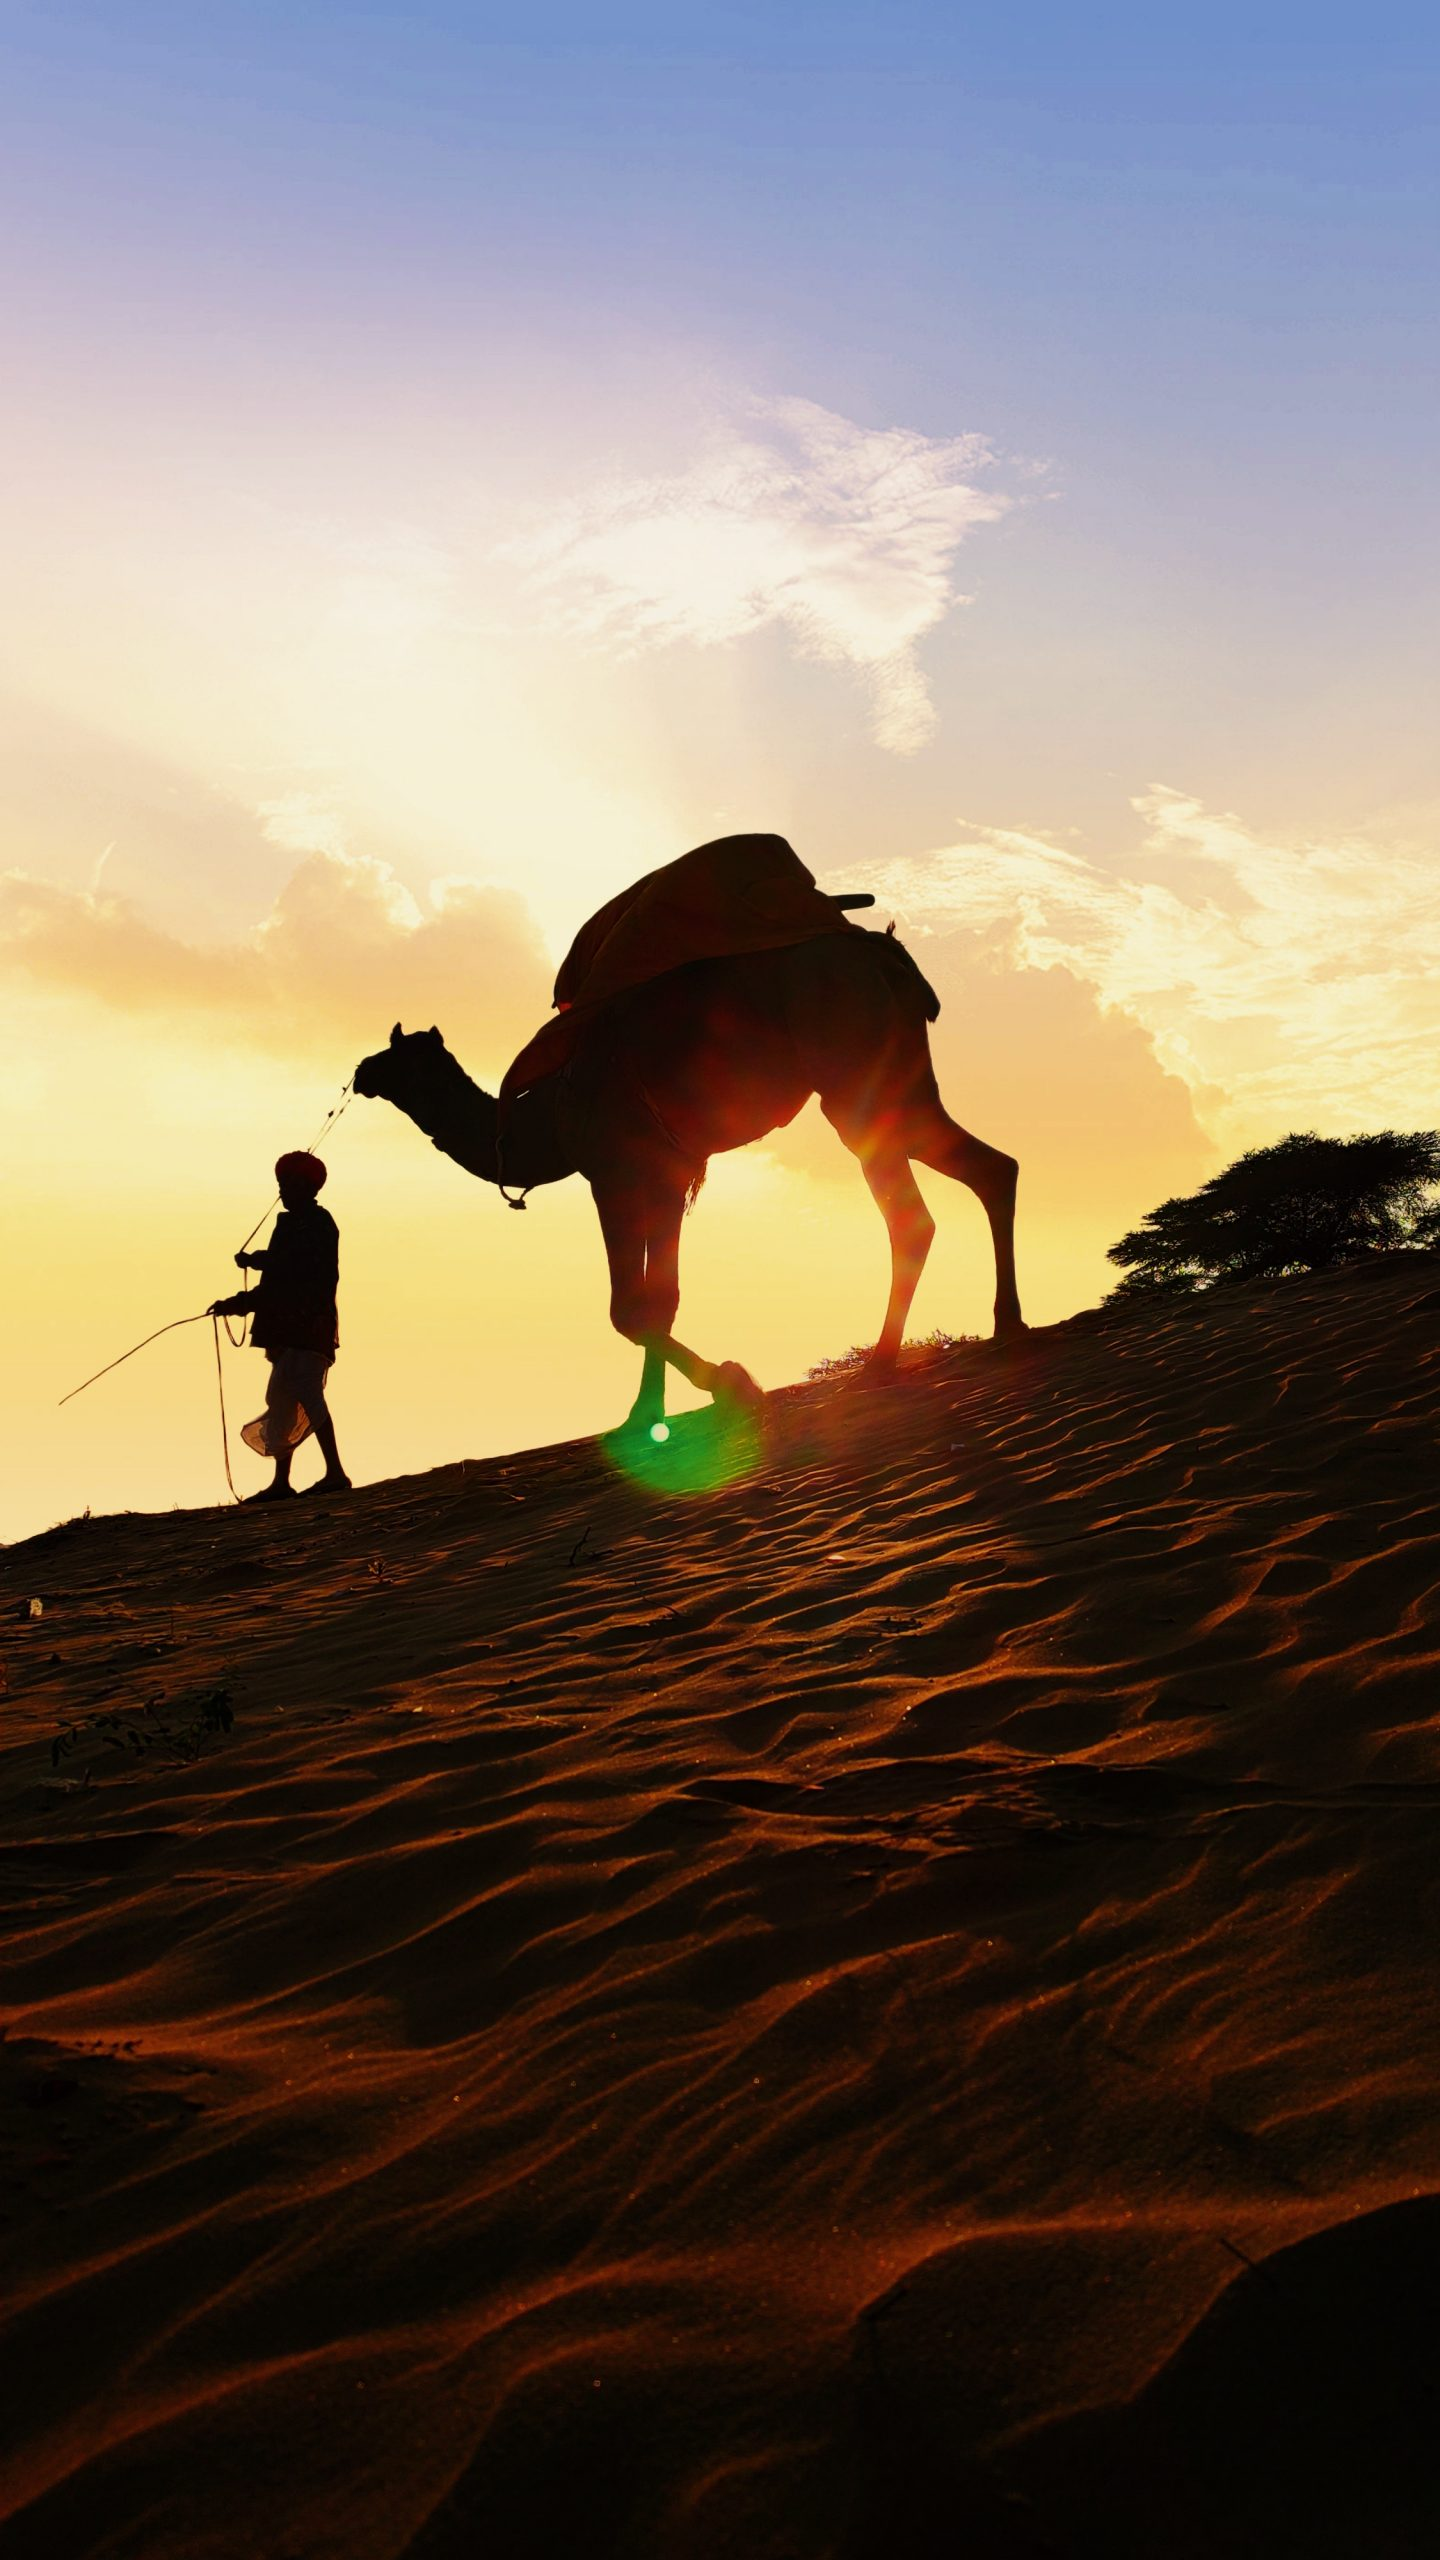 A man and a camel in the desert